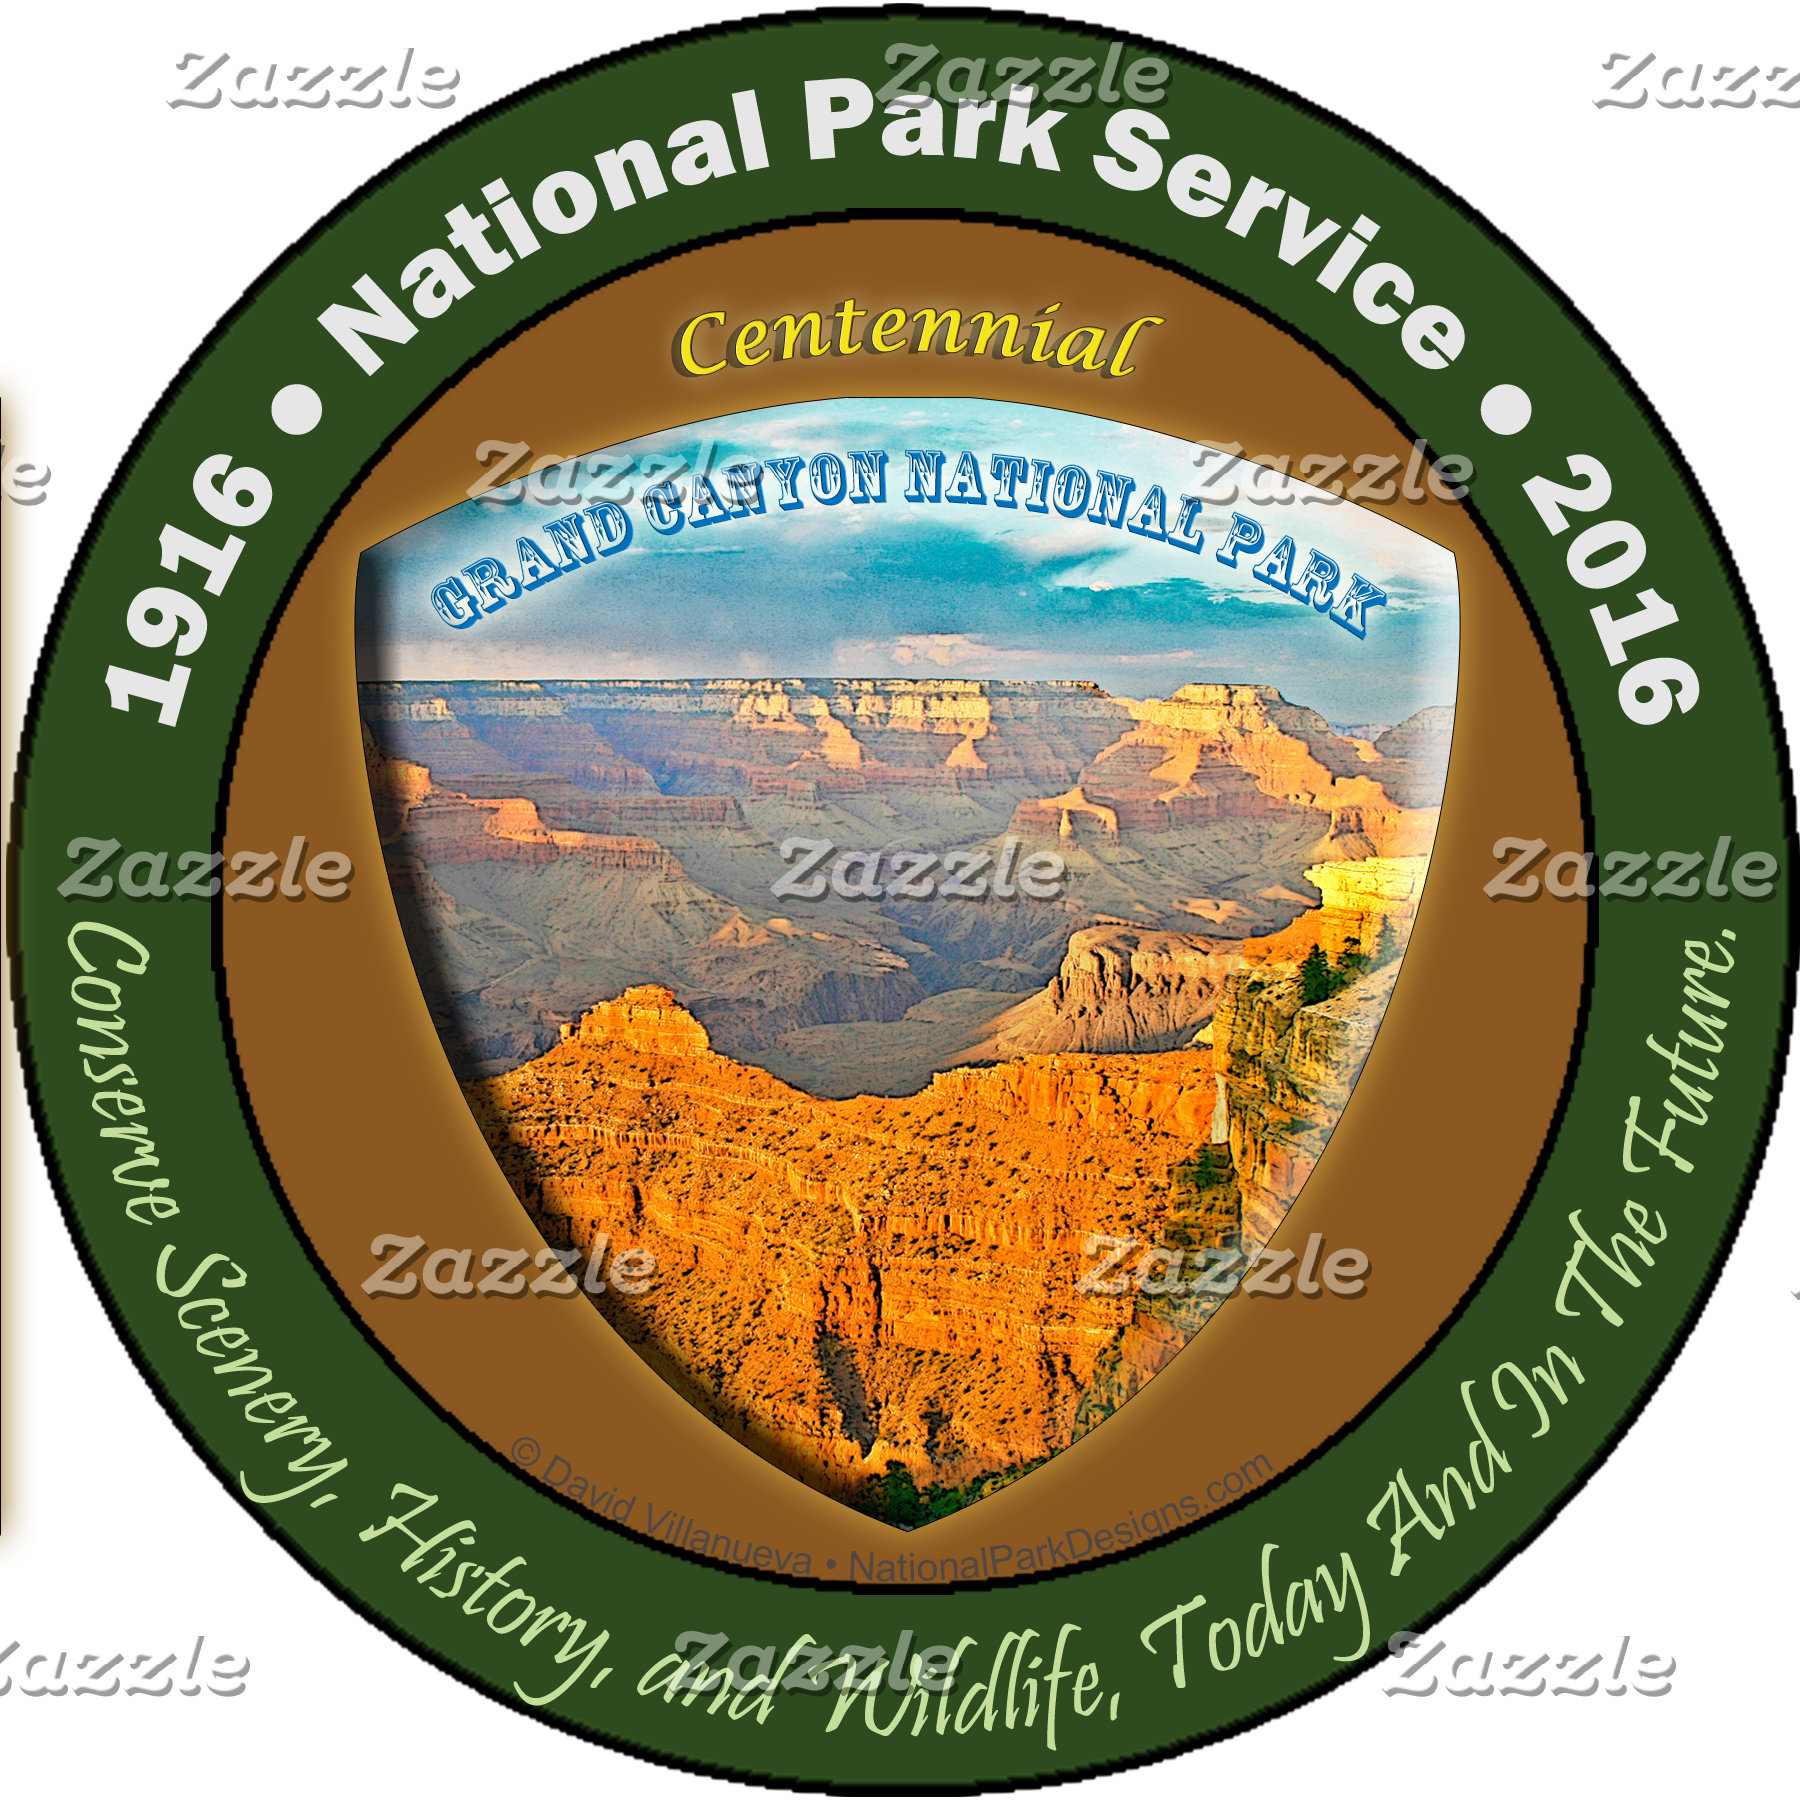 NPS Centennial - Grand Canyon View